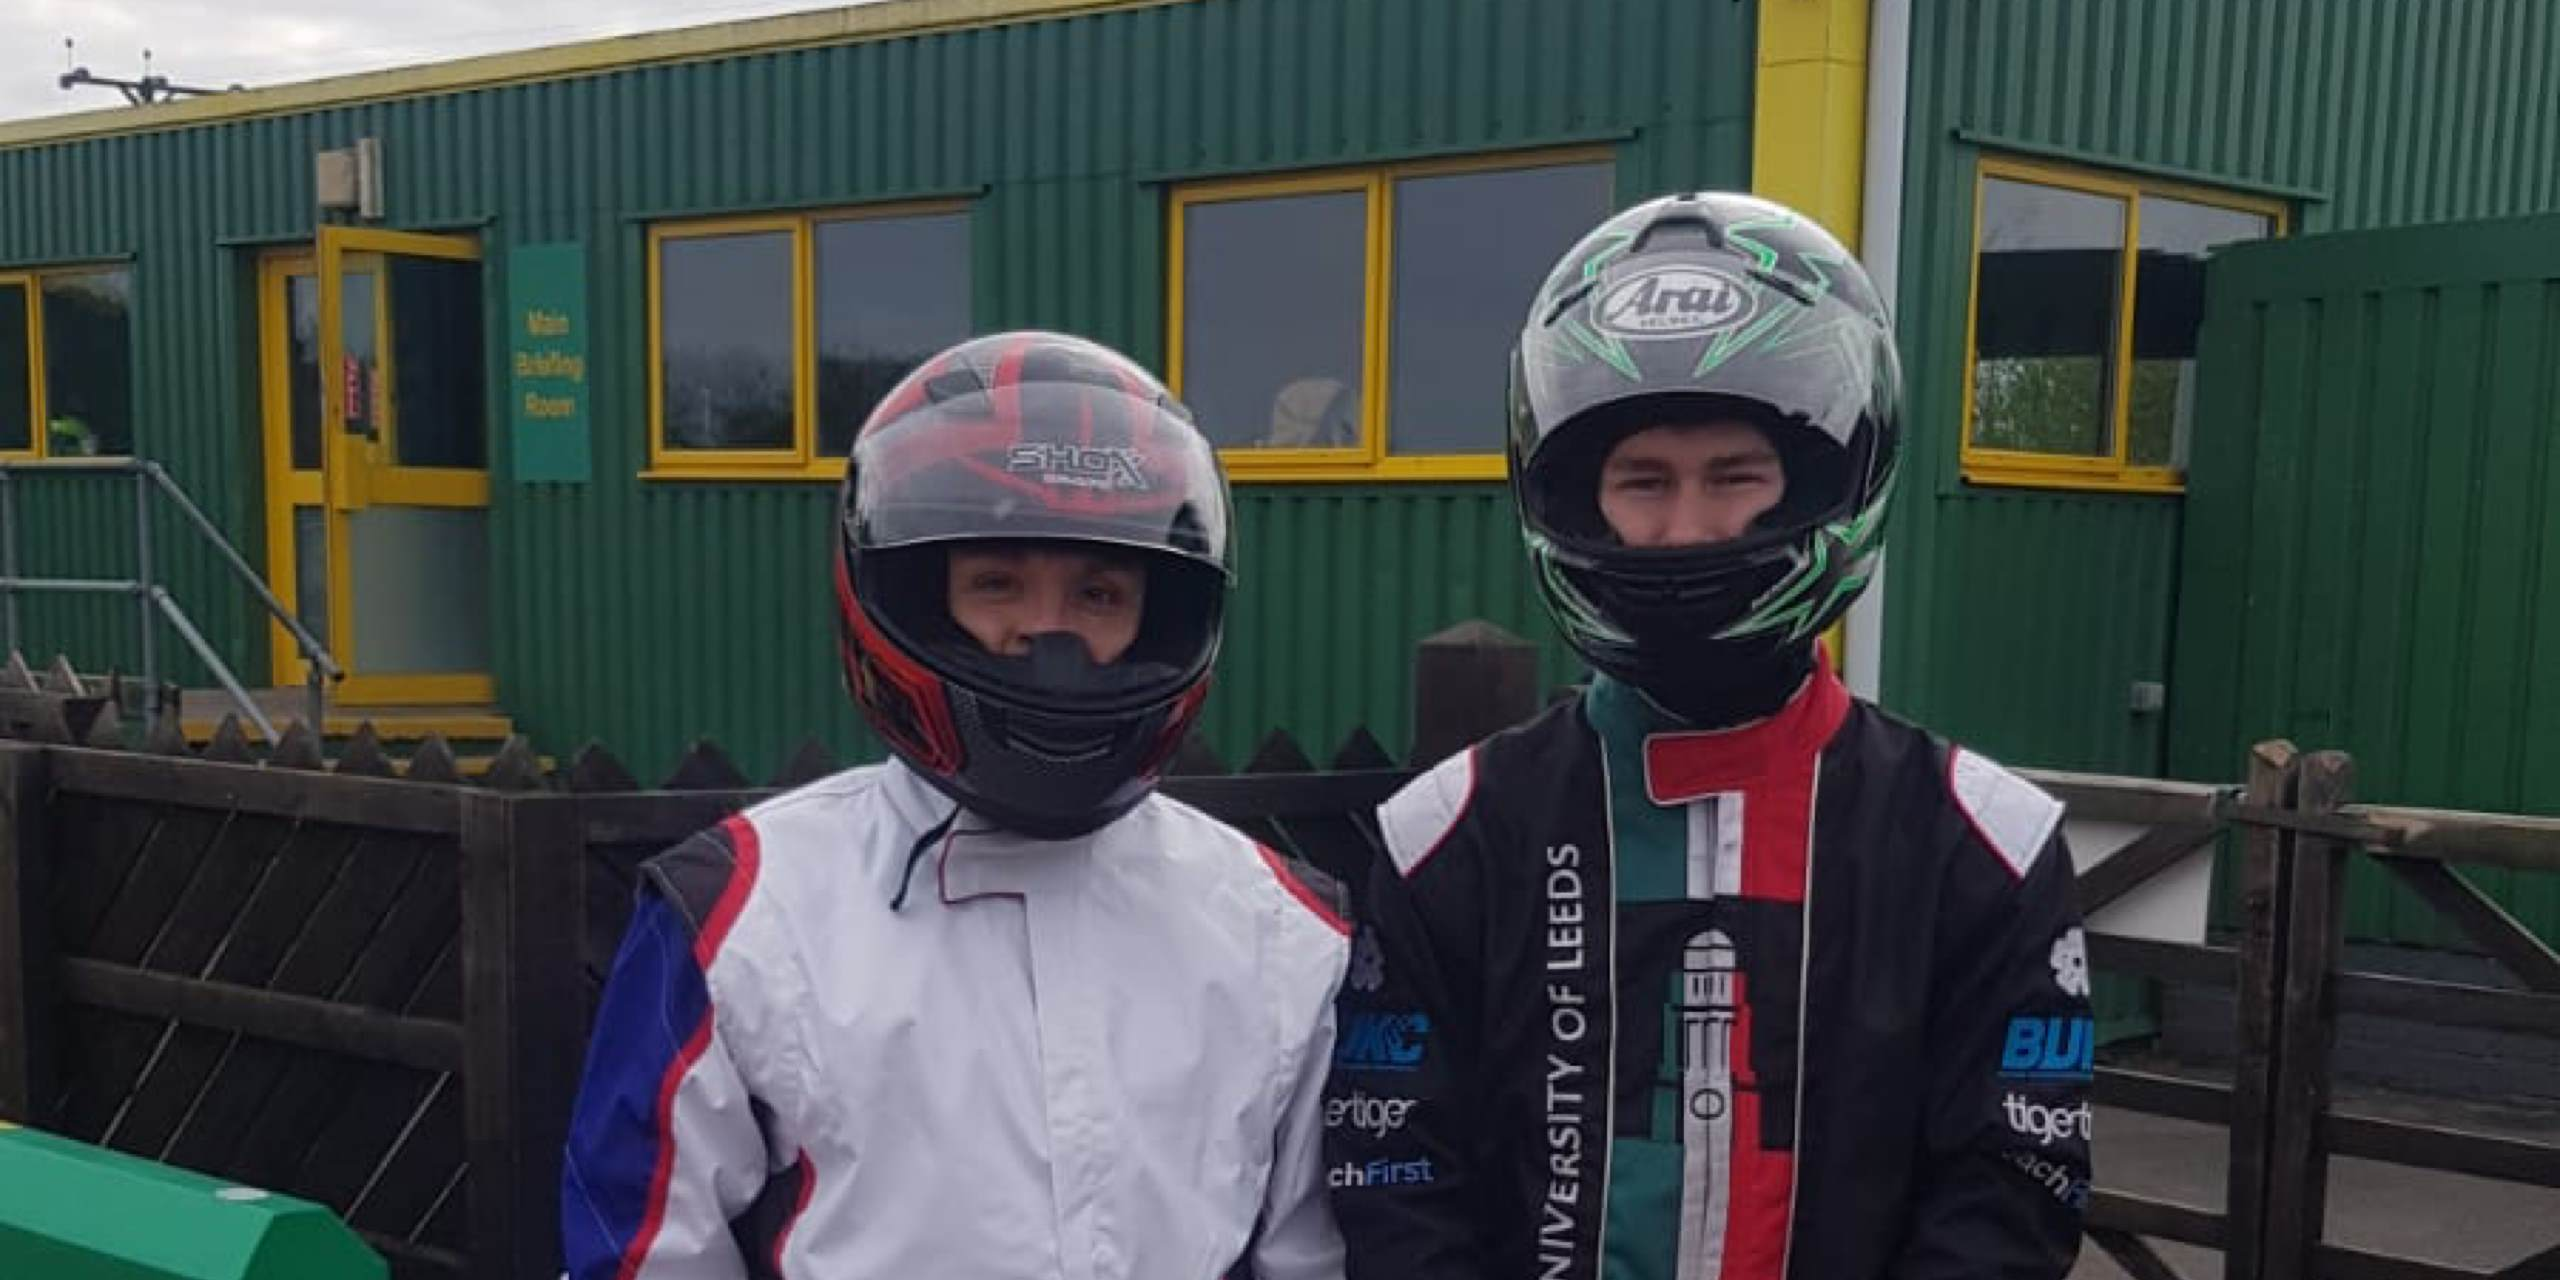 Karting North East News